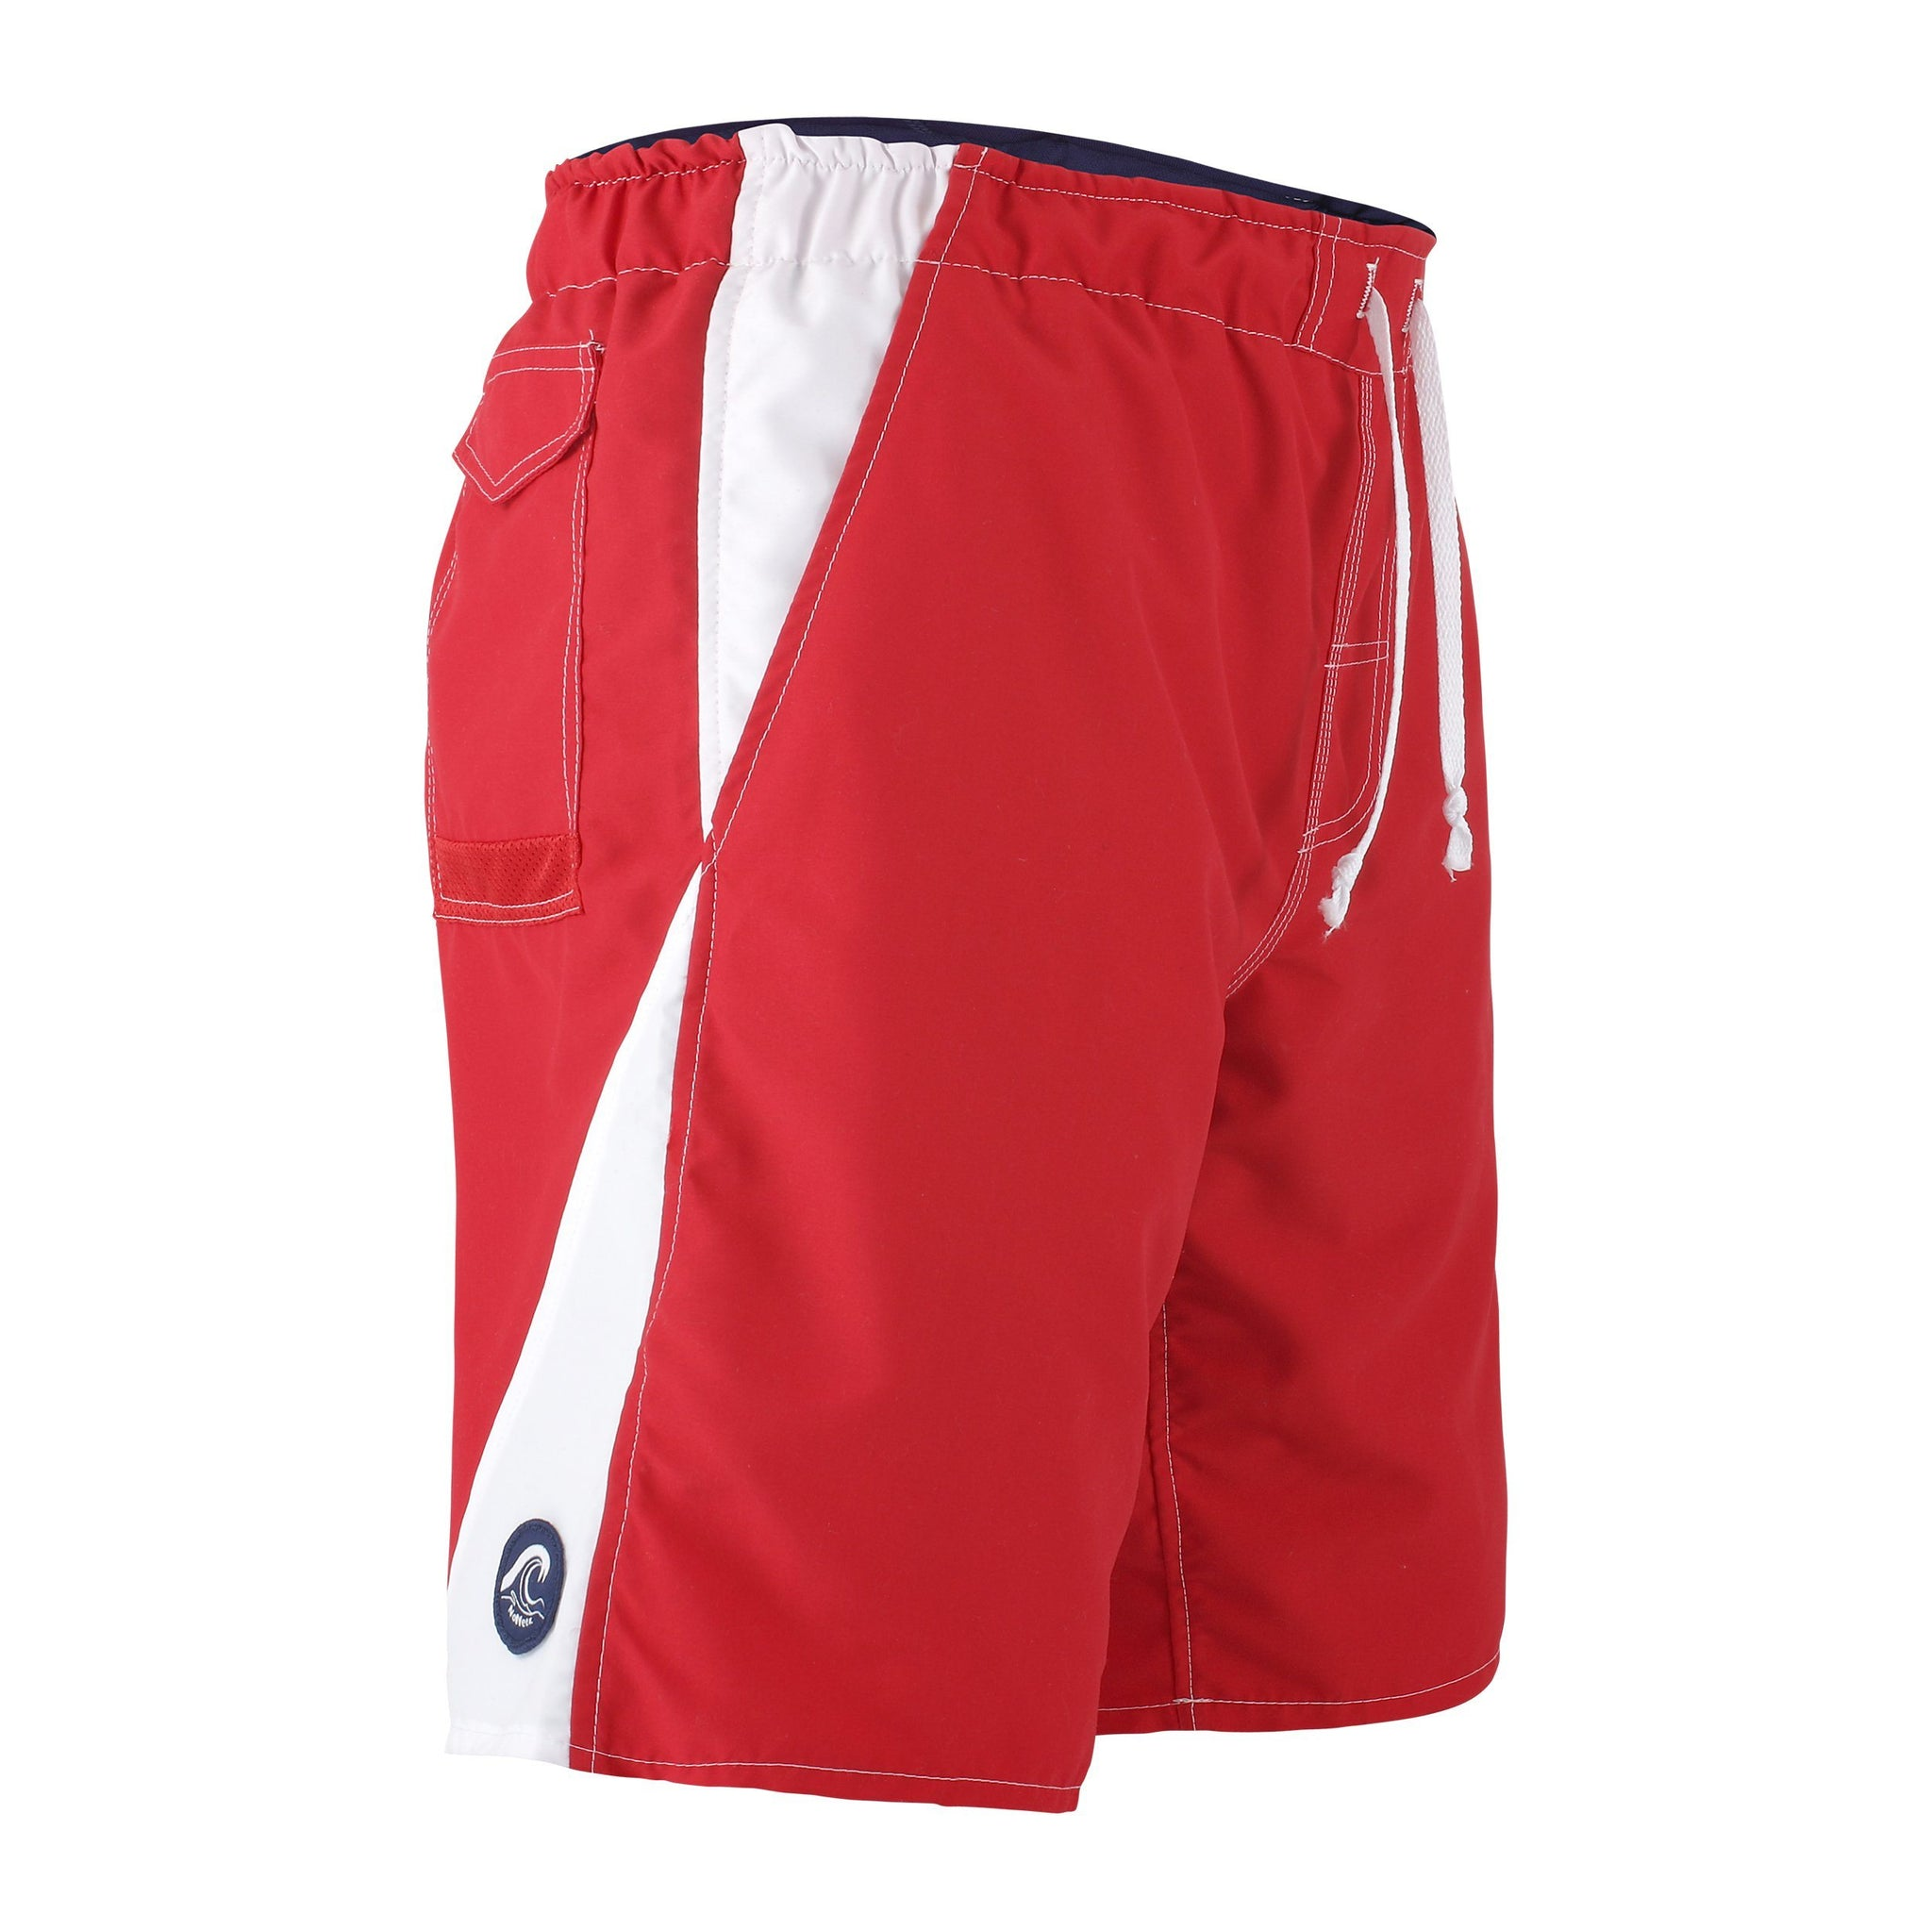 0542d9b268 The Zone - Men's Red and White Bathing Suit | NoNetz